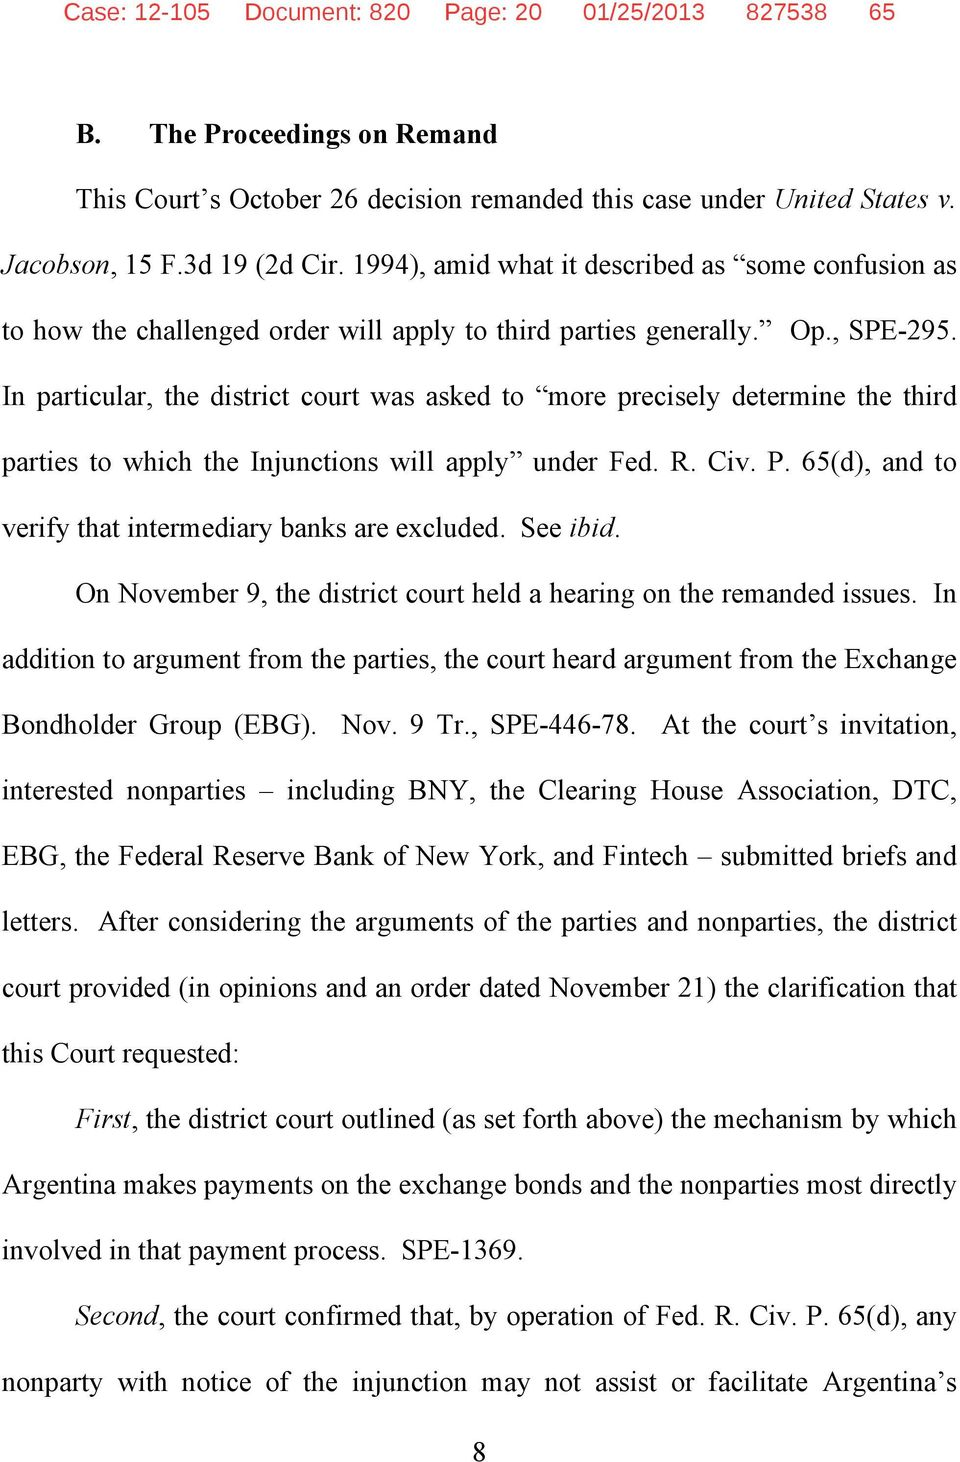 In particular, the district court was asked to more precisely determine the third parties to which the Injunctions will apply under Fed. R. Civ. P.